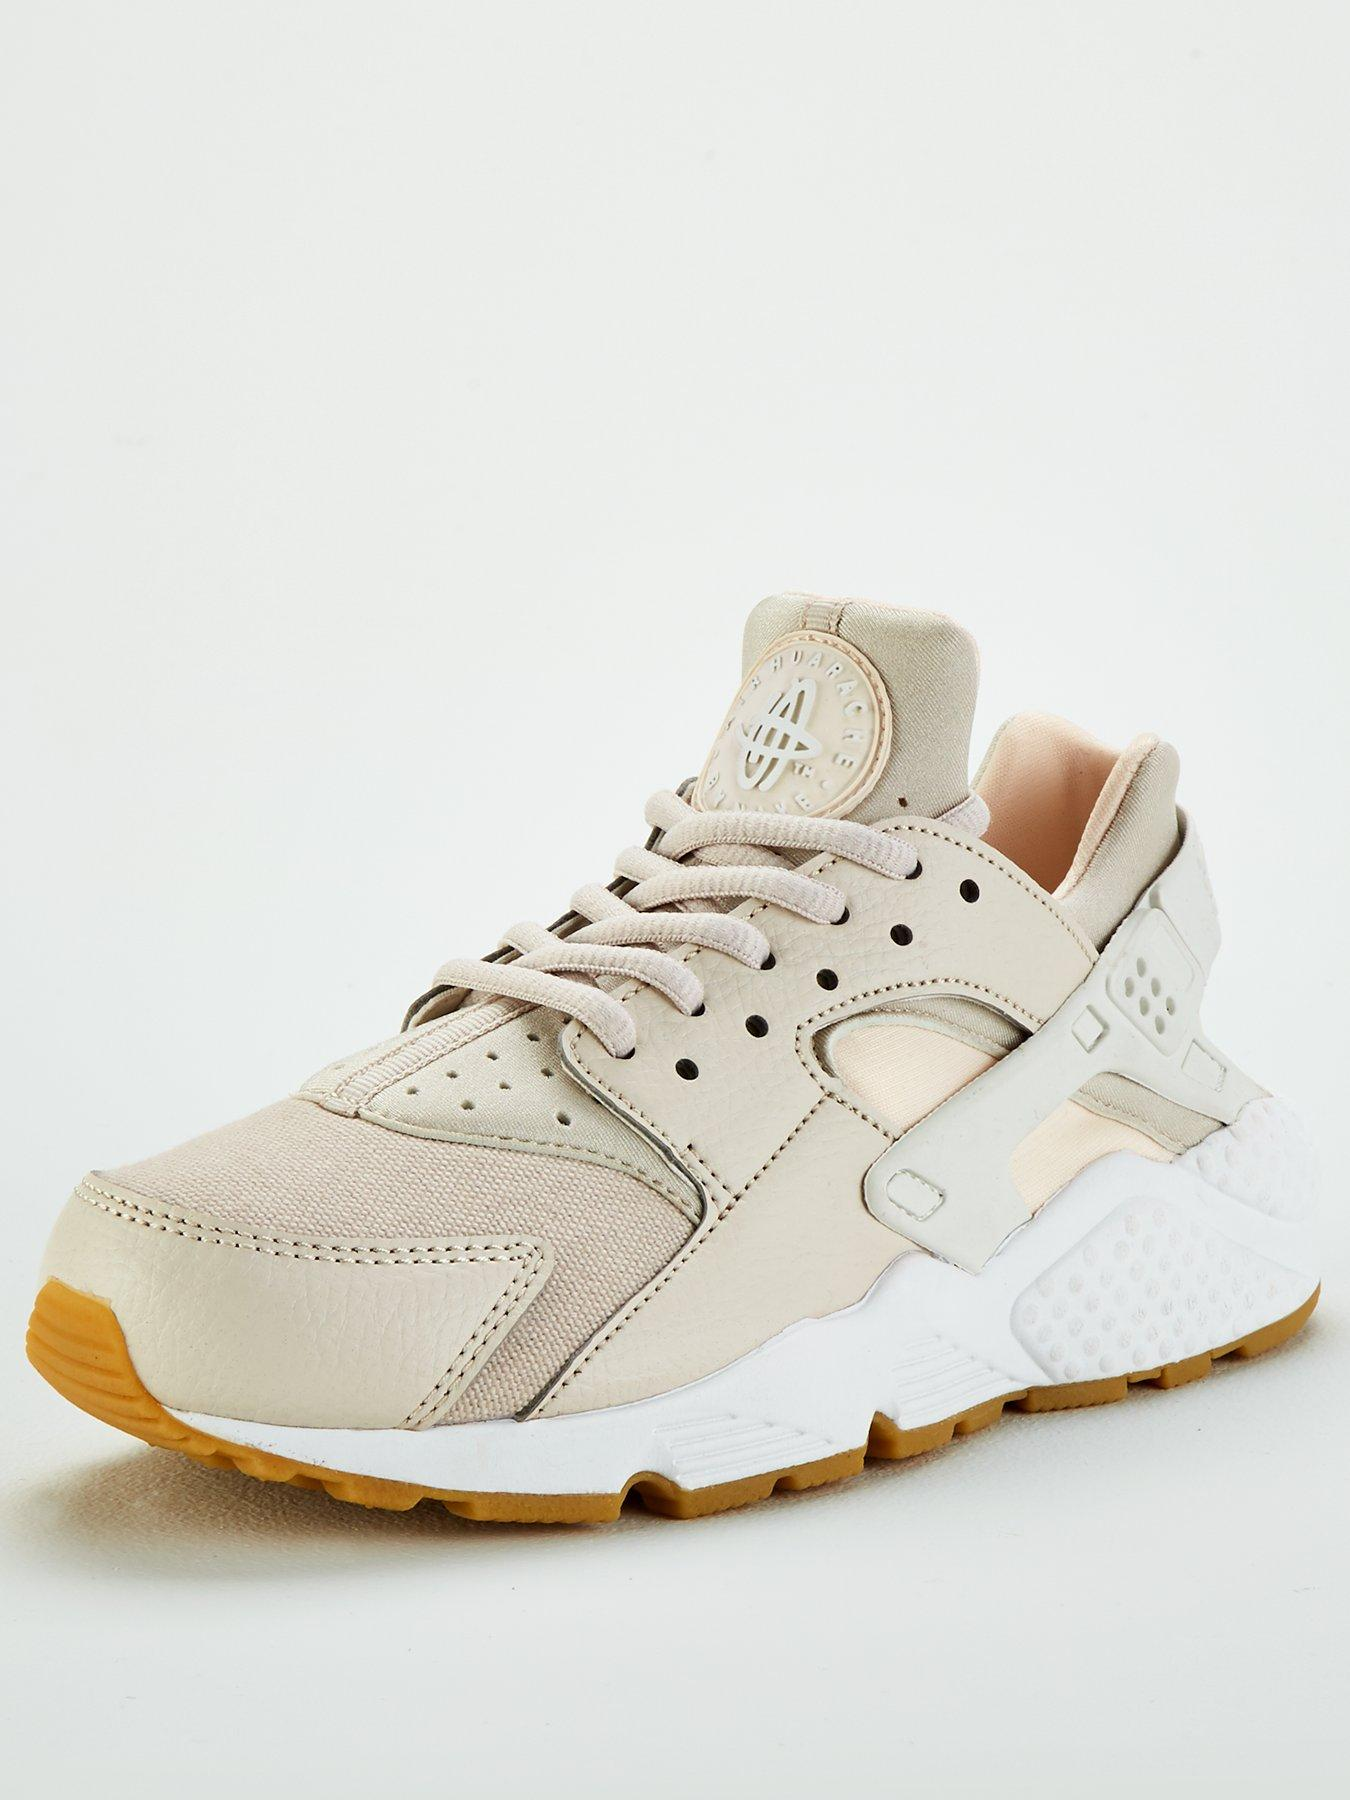 161f36112478 coupon for nike air huarache se rose gold earrings 3a640 4a7ad